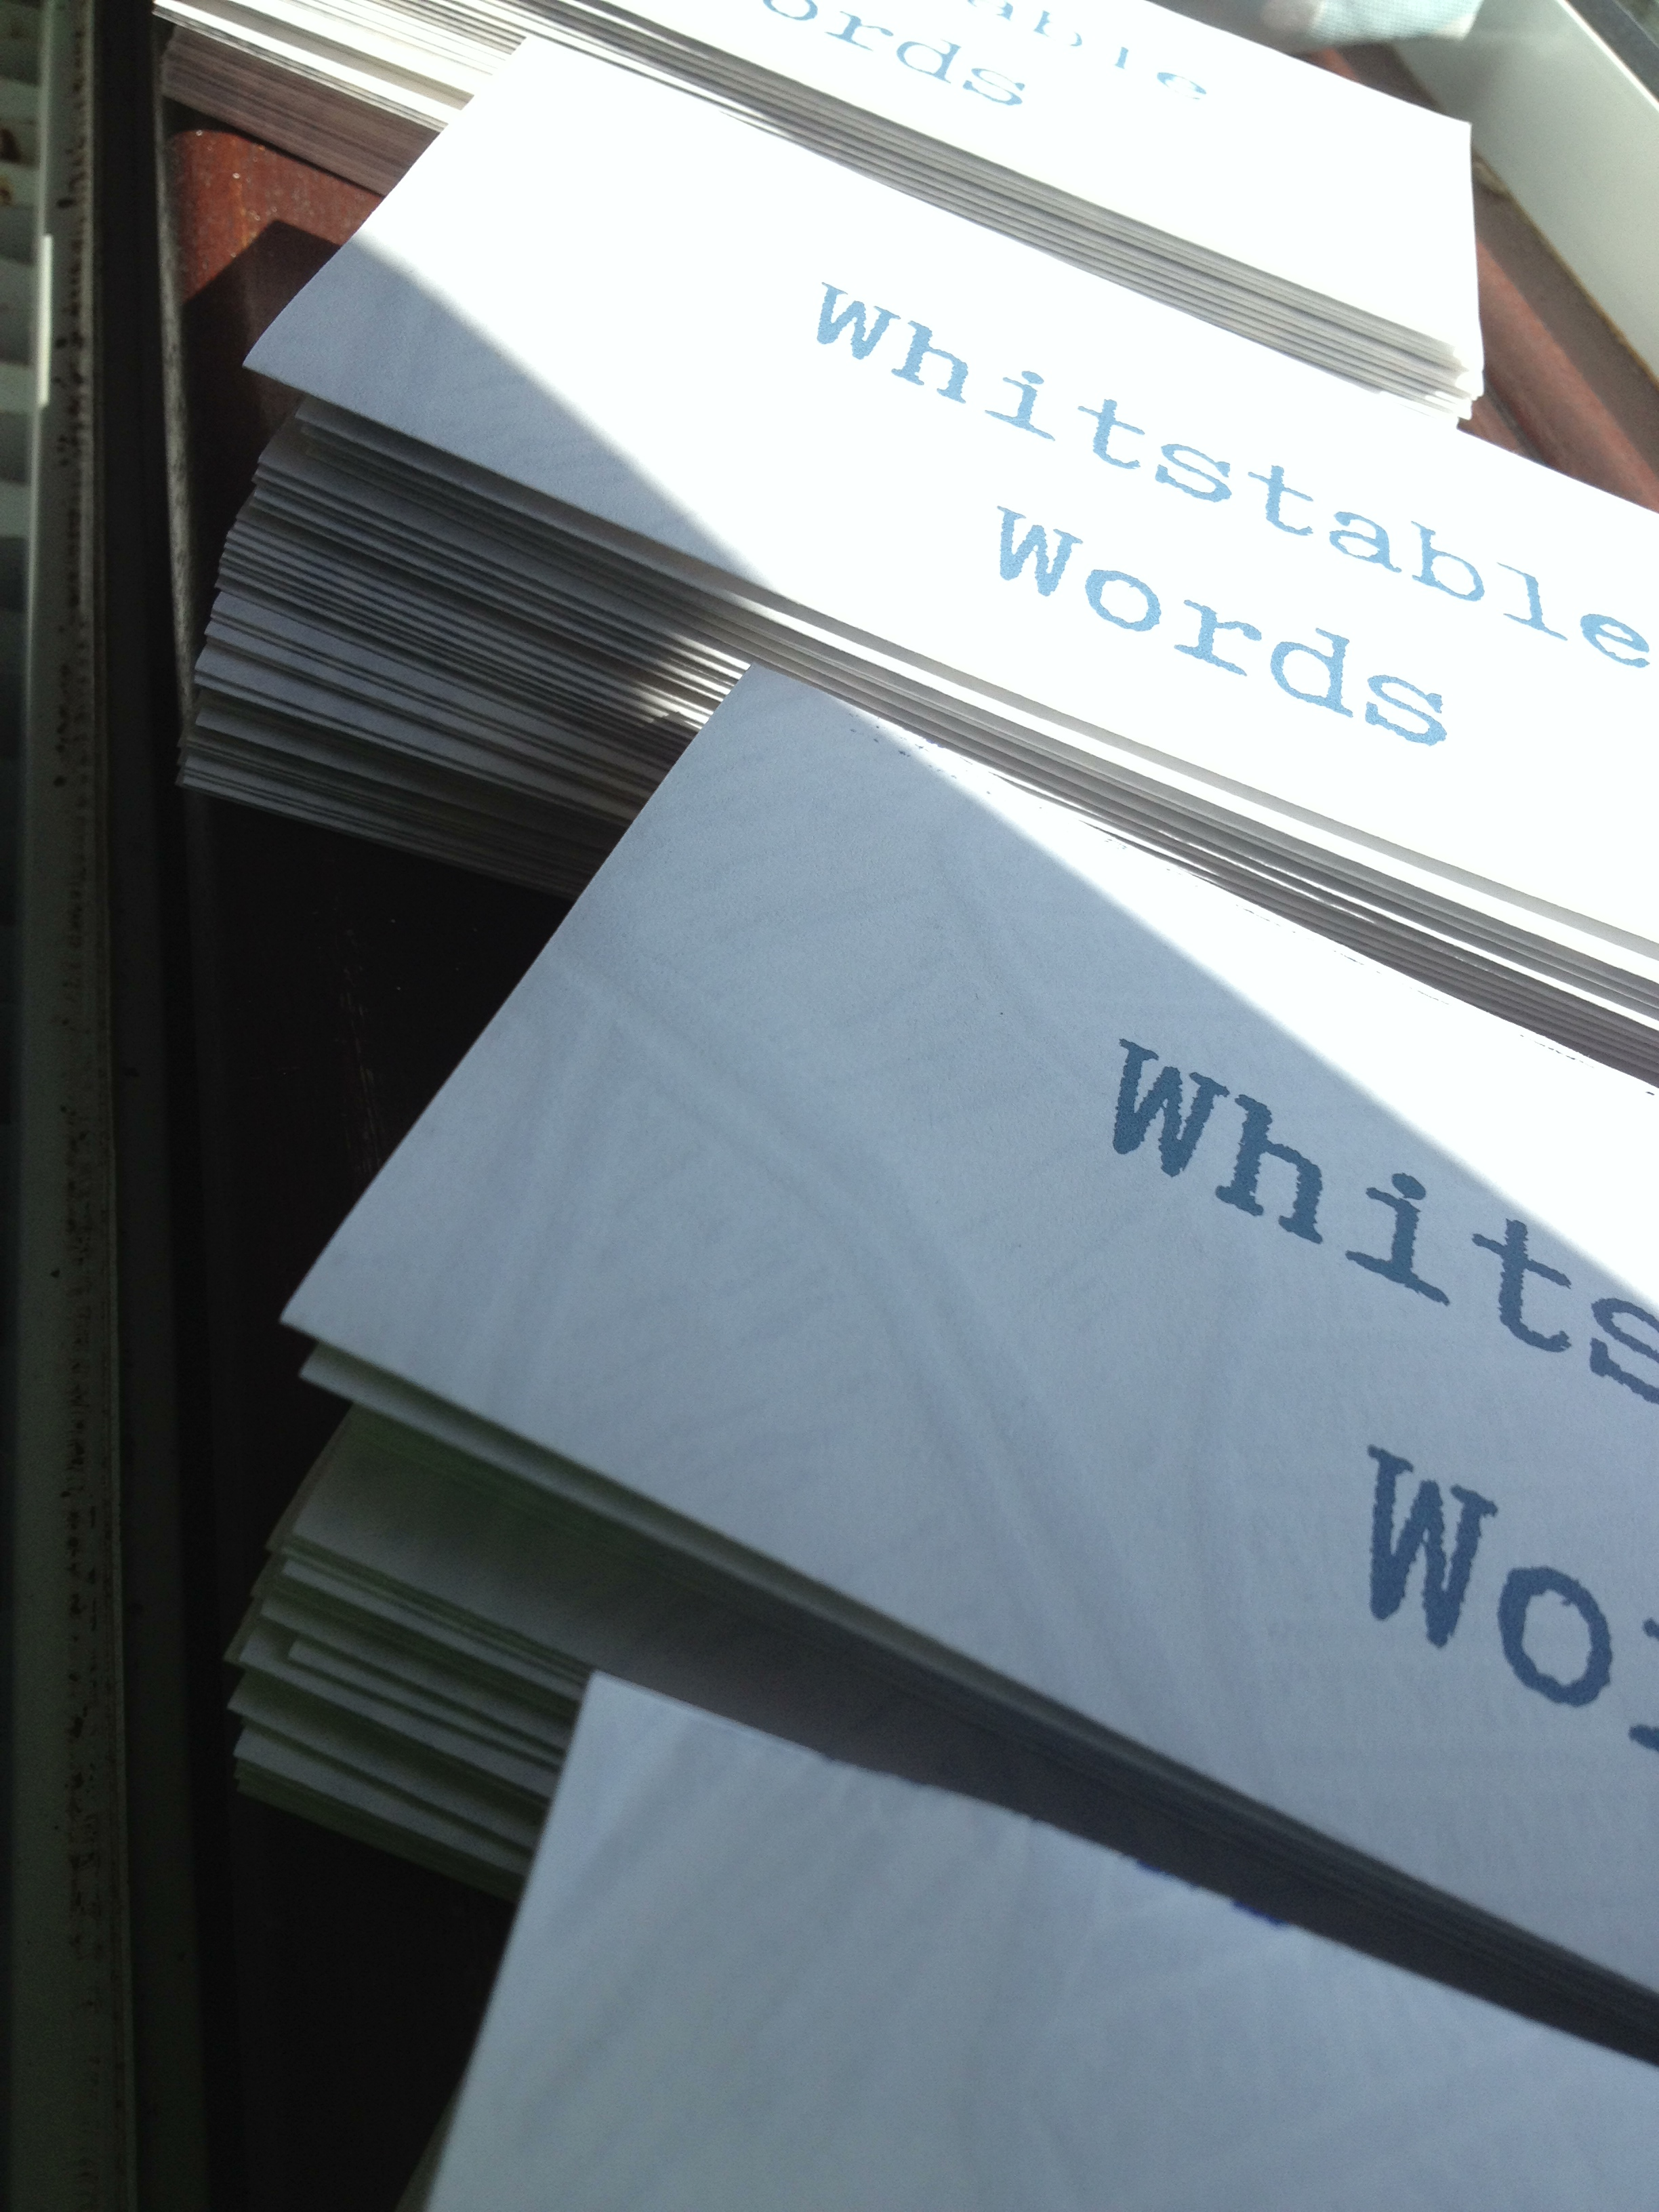 Whitstable Words map leaflets